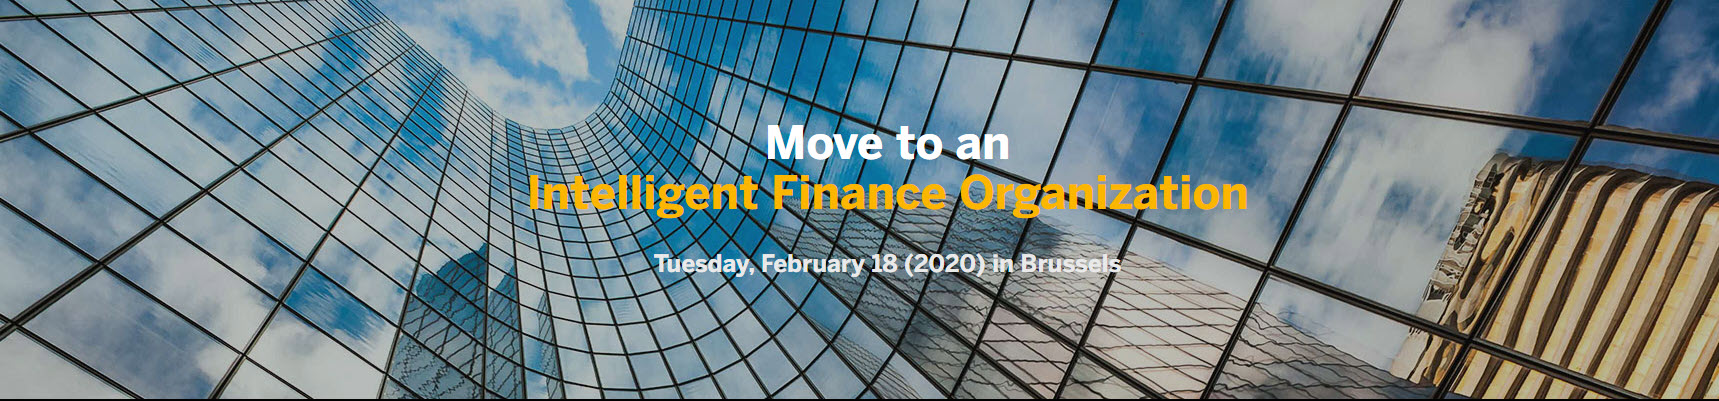 Move to an Intelligent Finance Organization